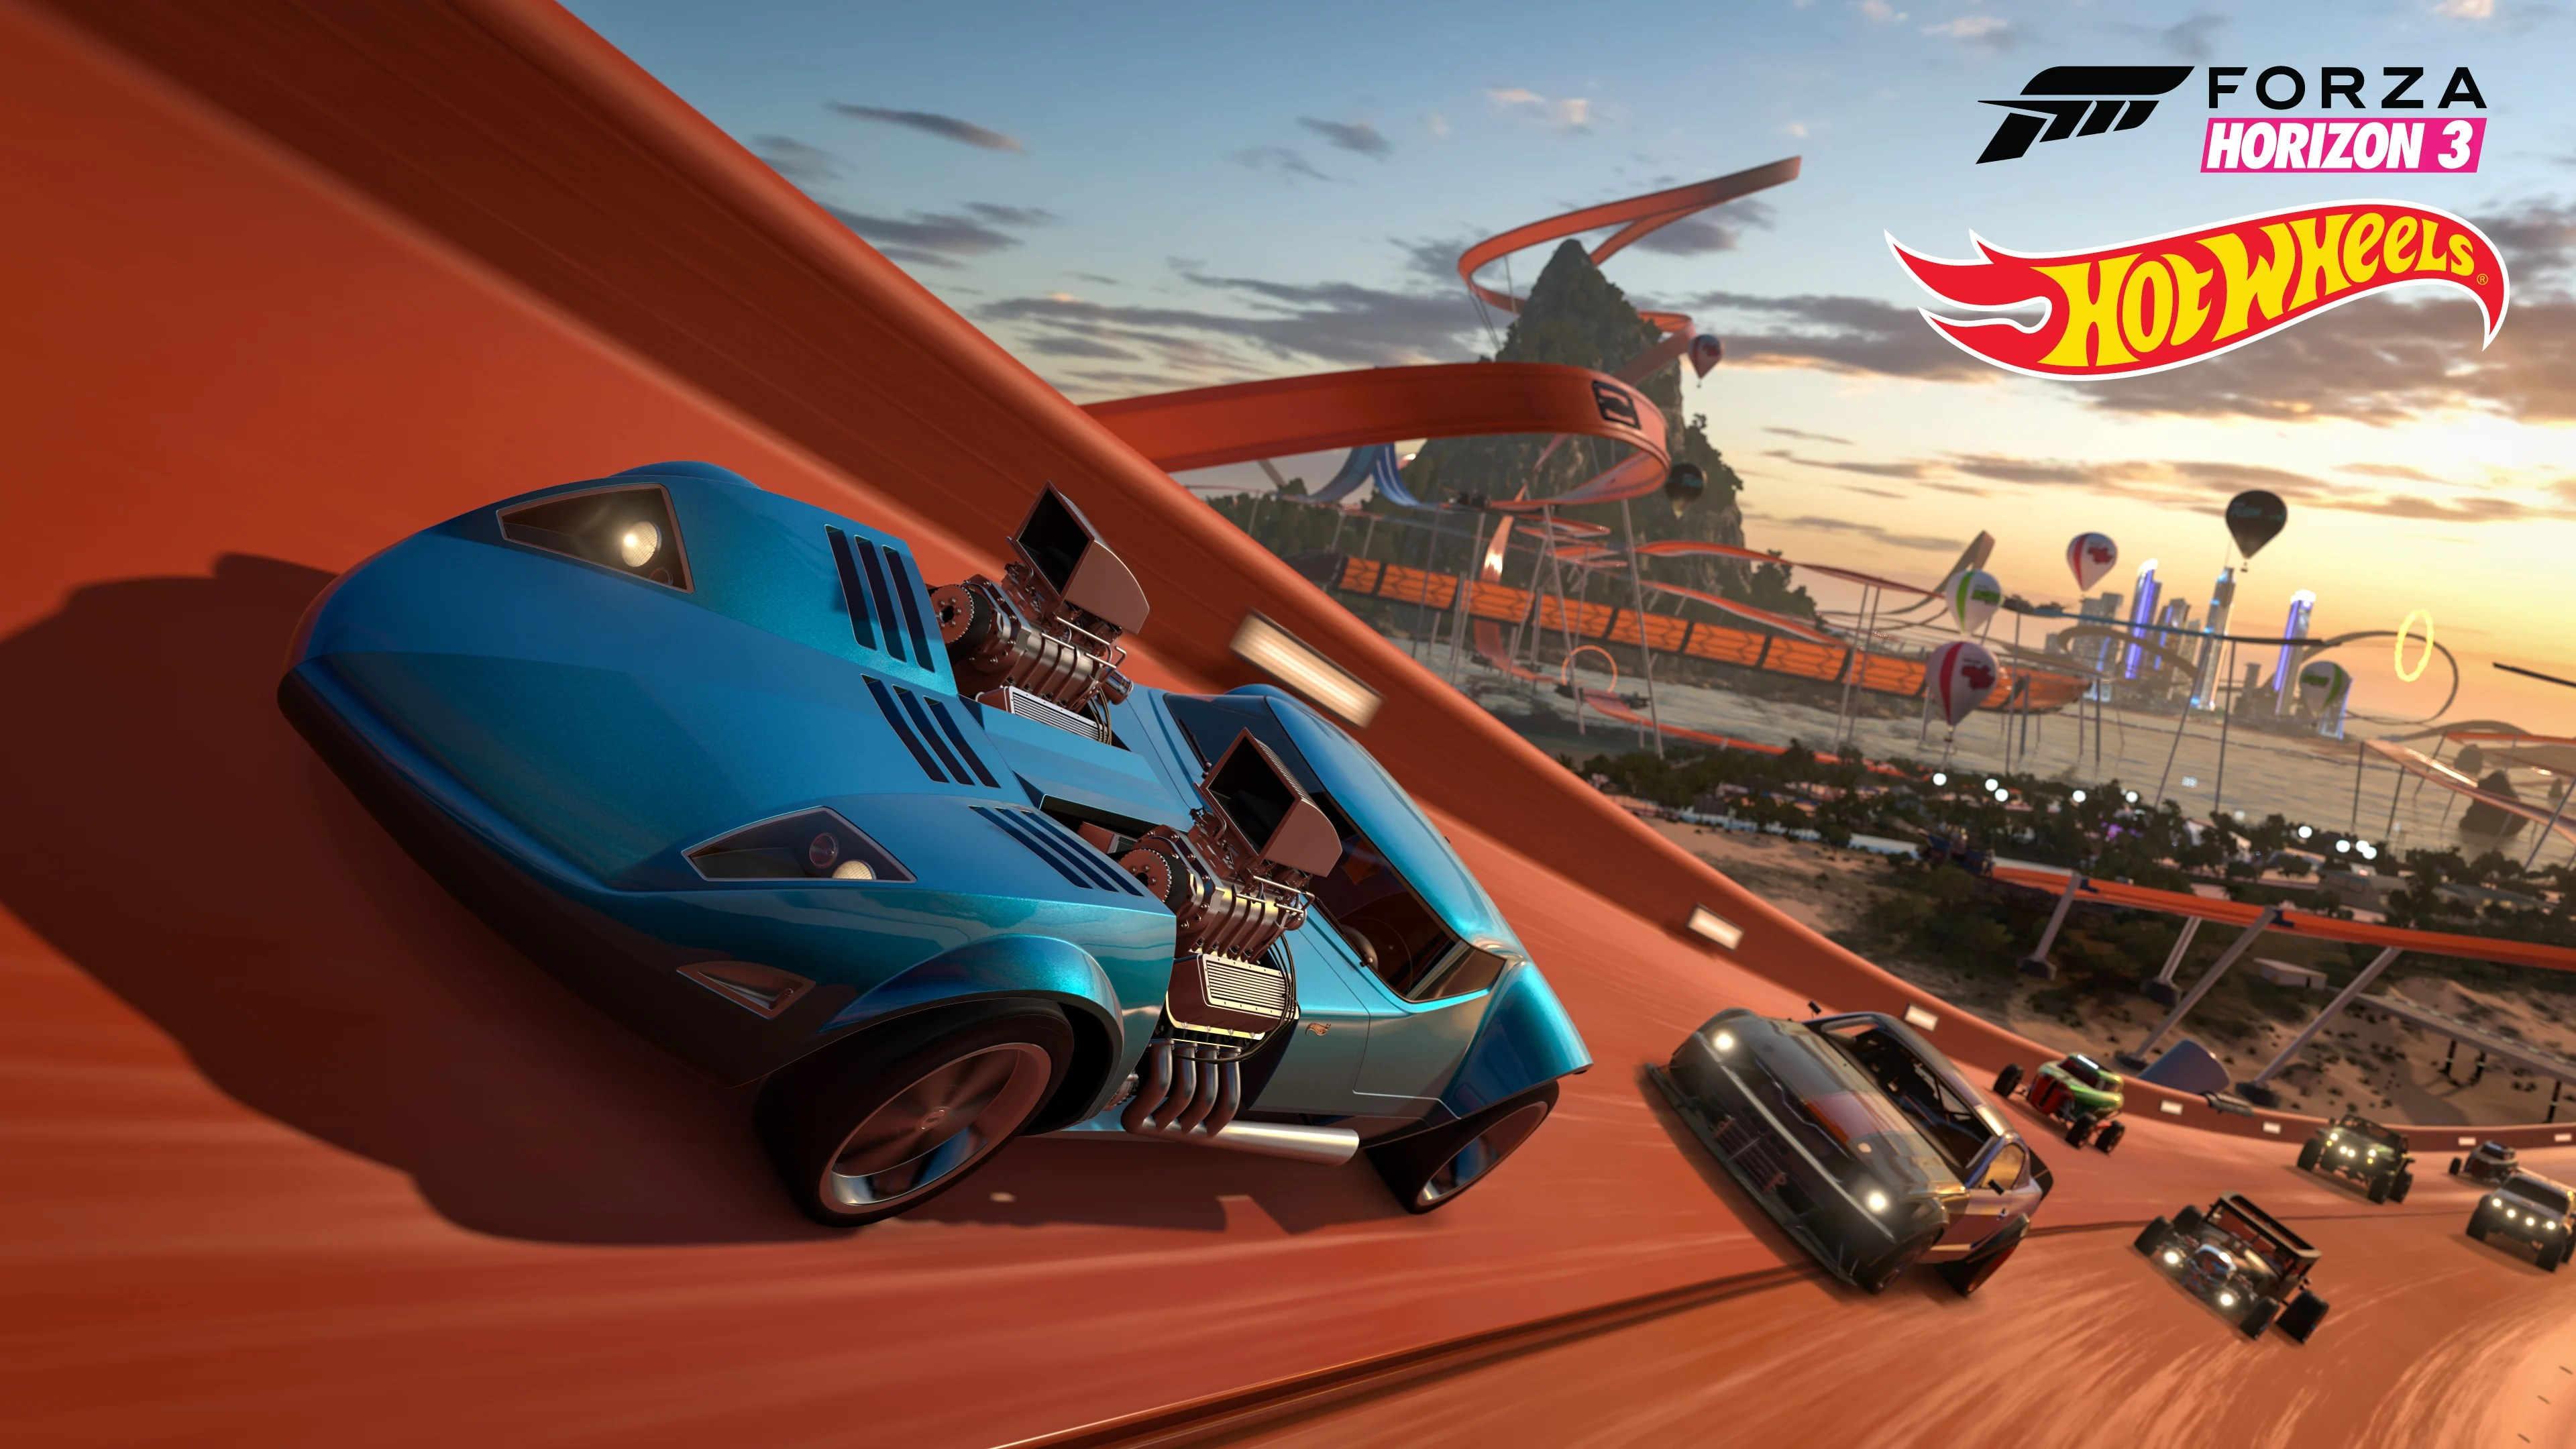 3d Cross Live Wallpaper Apk Forza Horizon 3 Hot Wheels Xbox One S Bundle Is Now Available